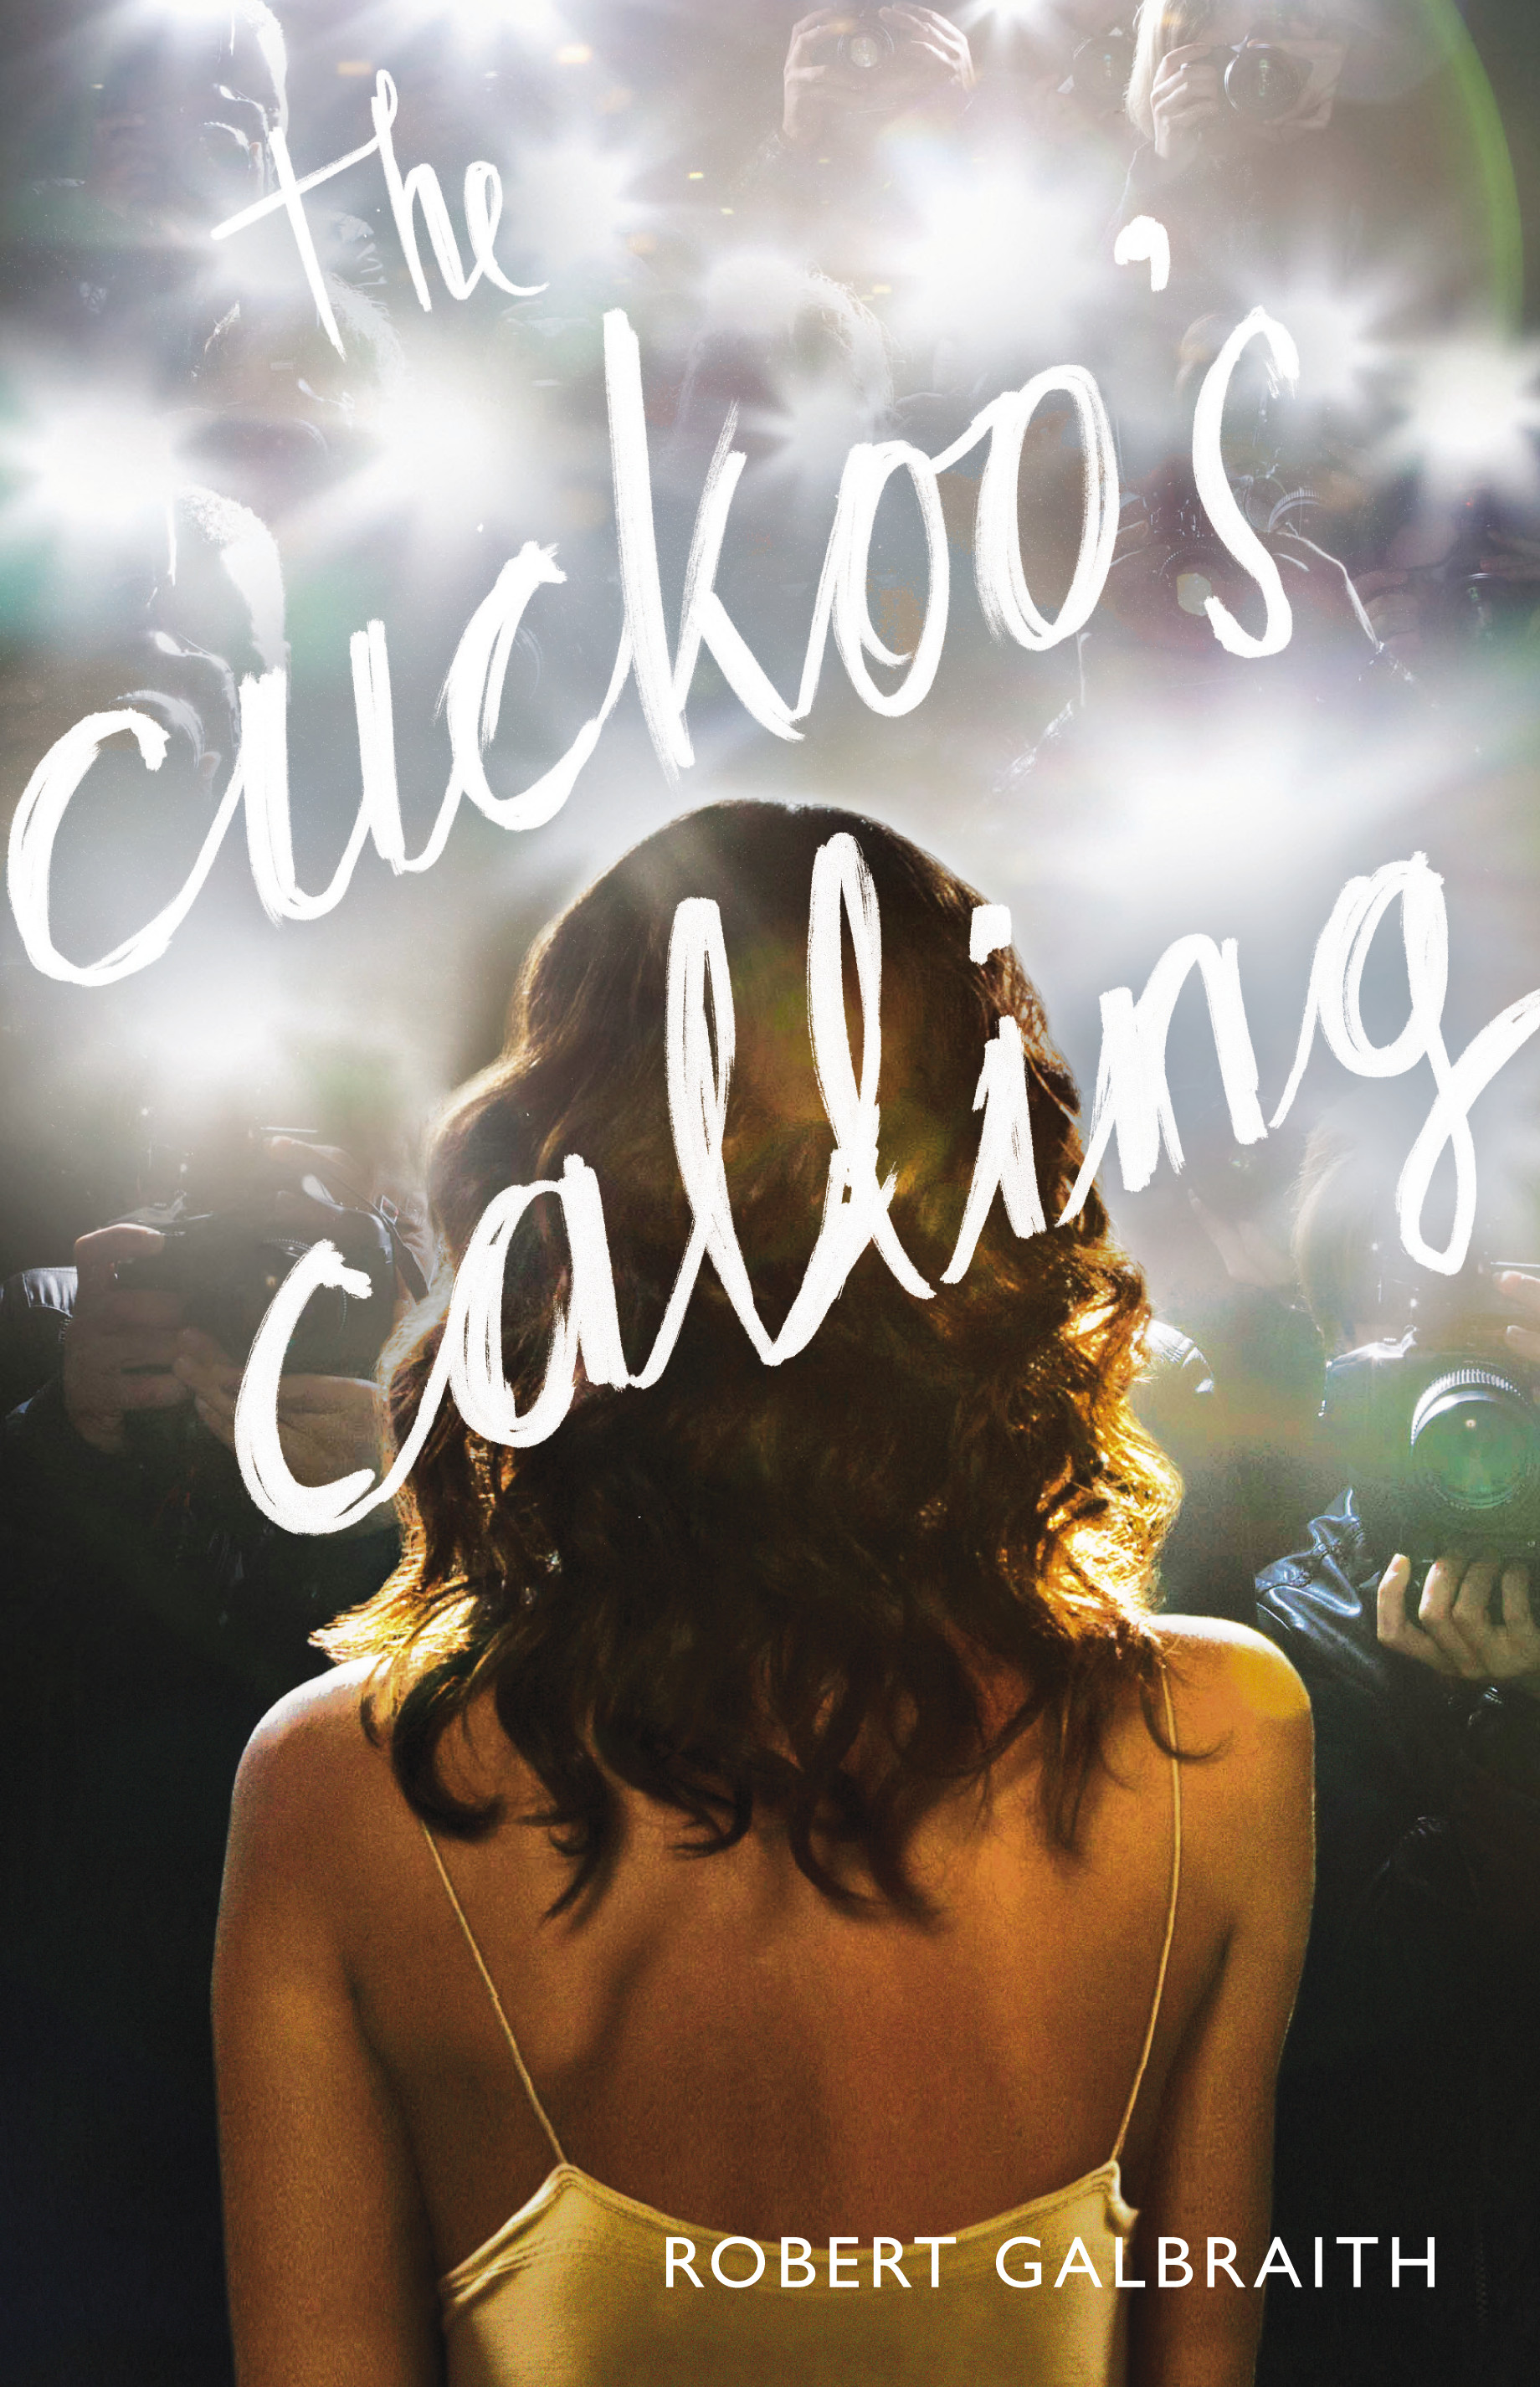 2013-08-03 The Cuckoo's Calling